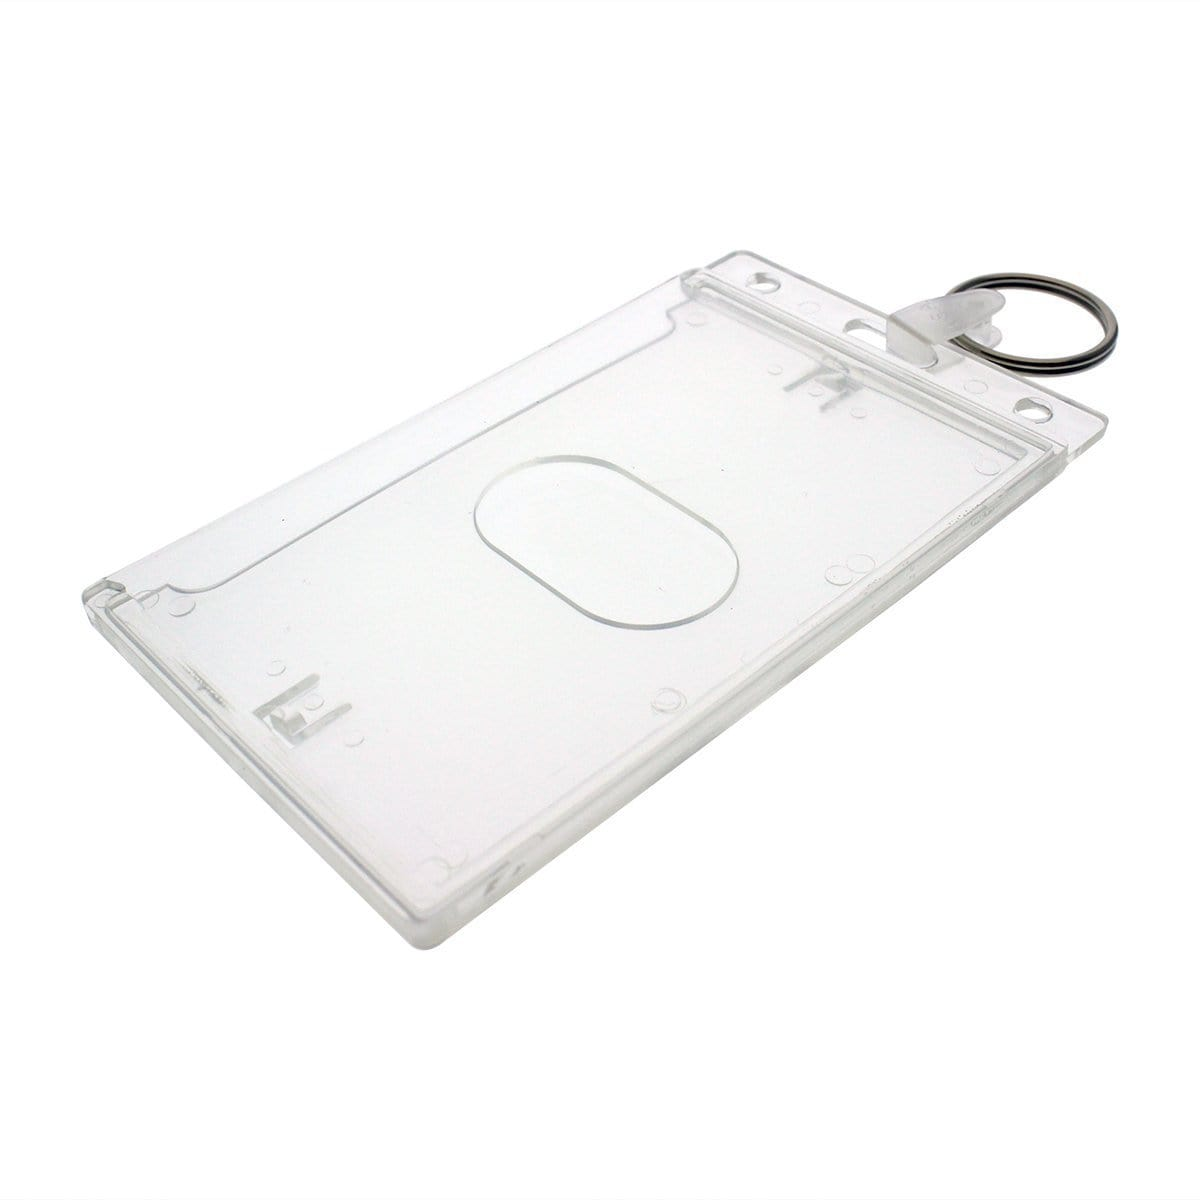 Rigid Fuel Card Holder with Key Ring